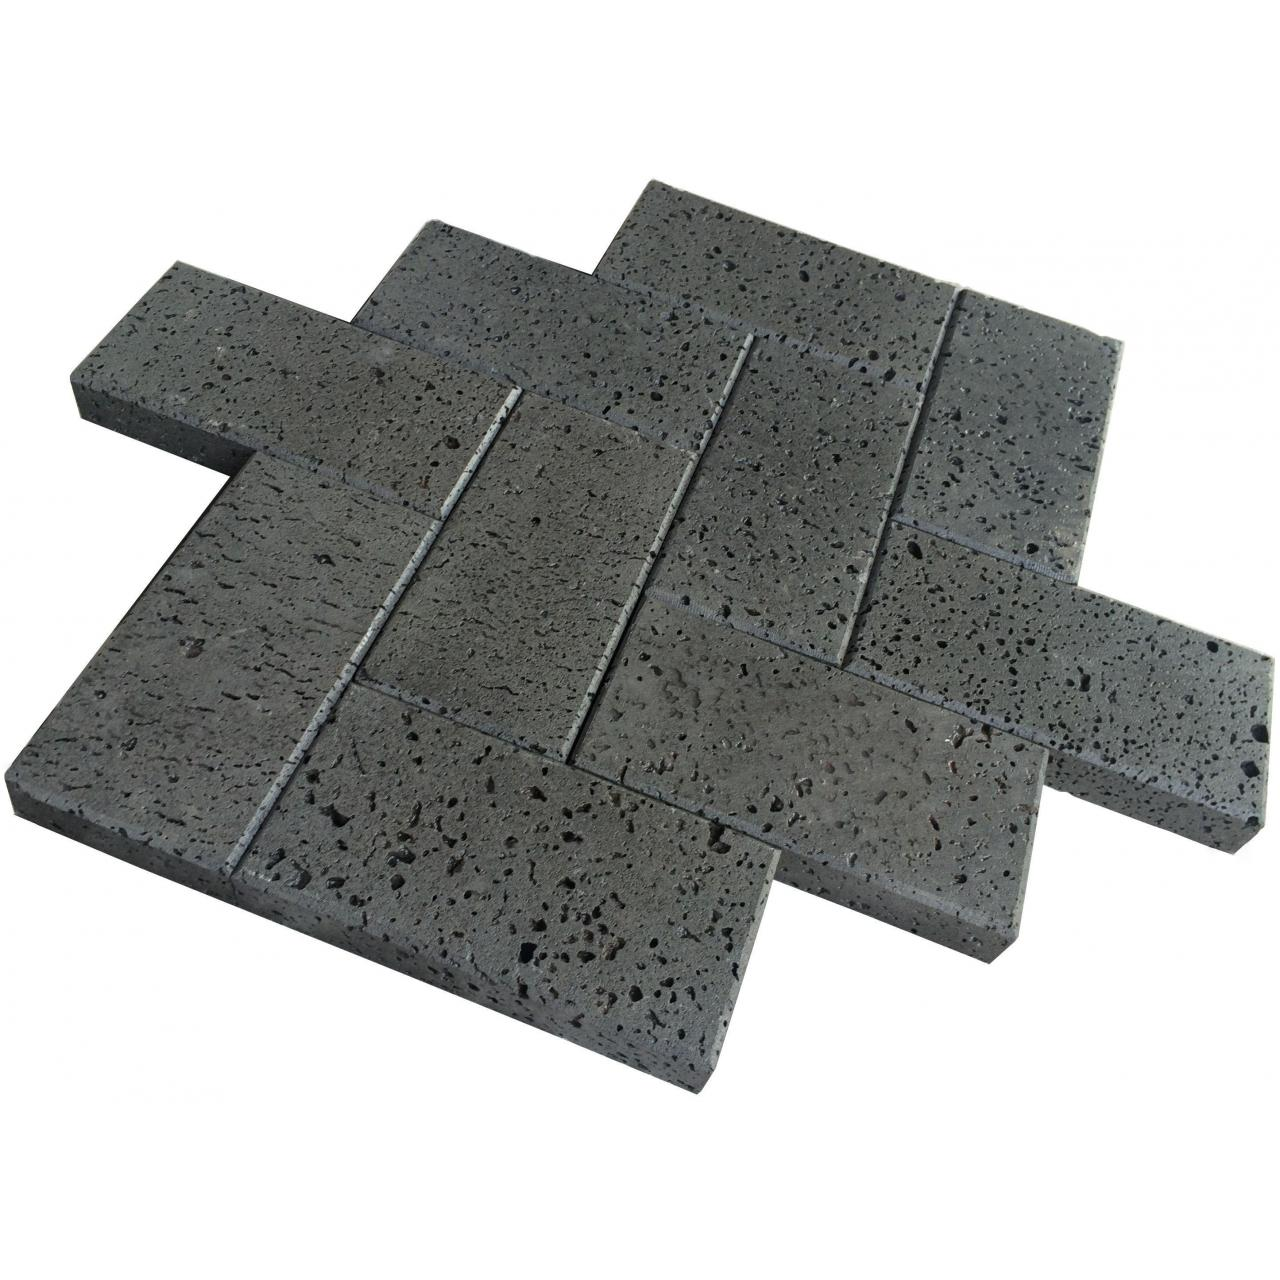 Granite Cut To Size Lava Stone With Holes for sale